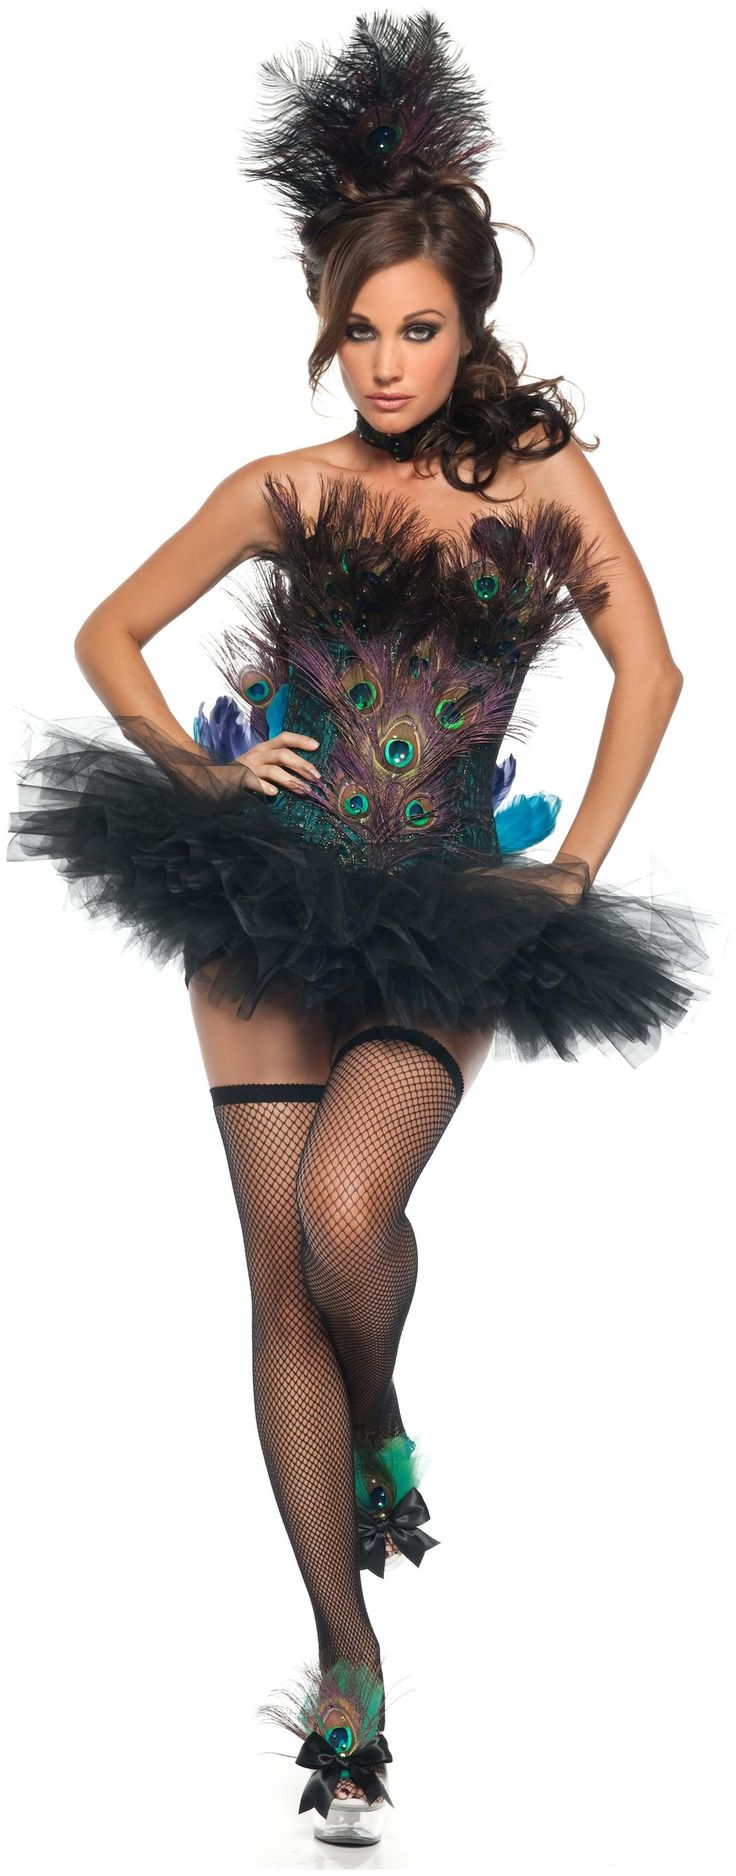 PartyBell.com - Sexy Peacock #AdultCostume